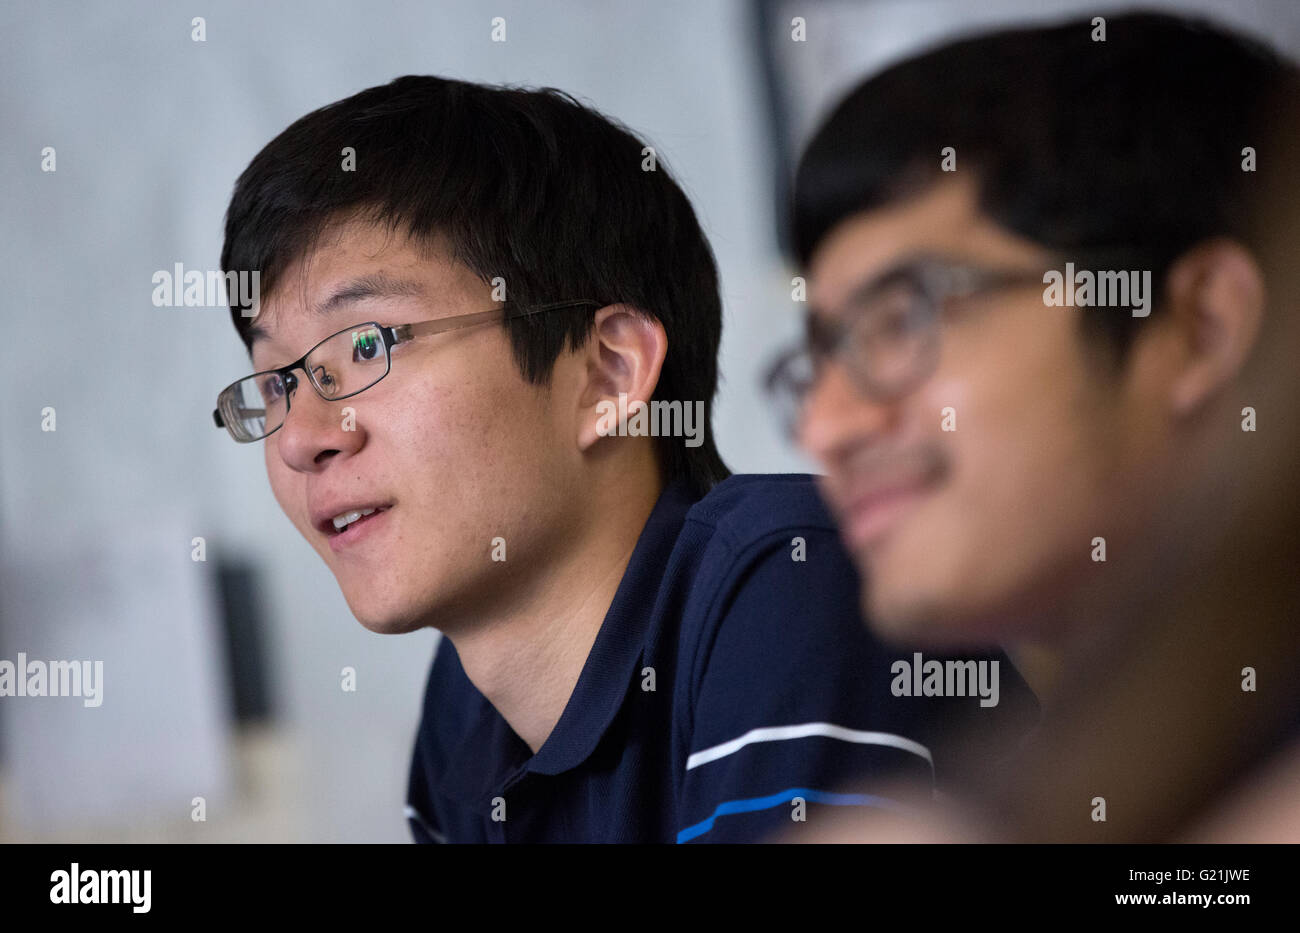 High School students physics class - Stock Image